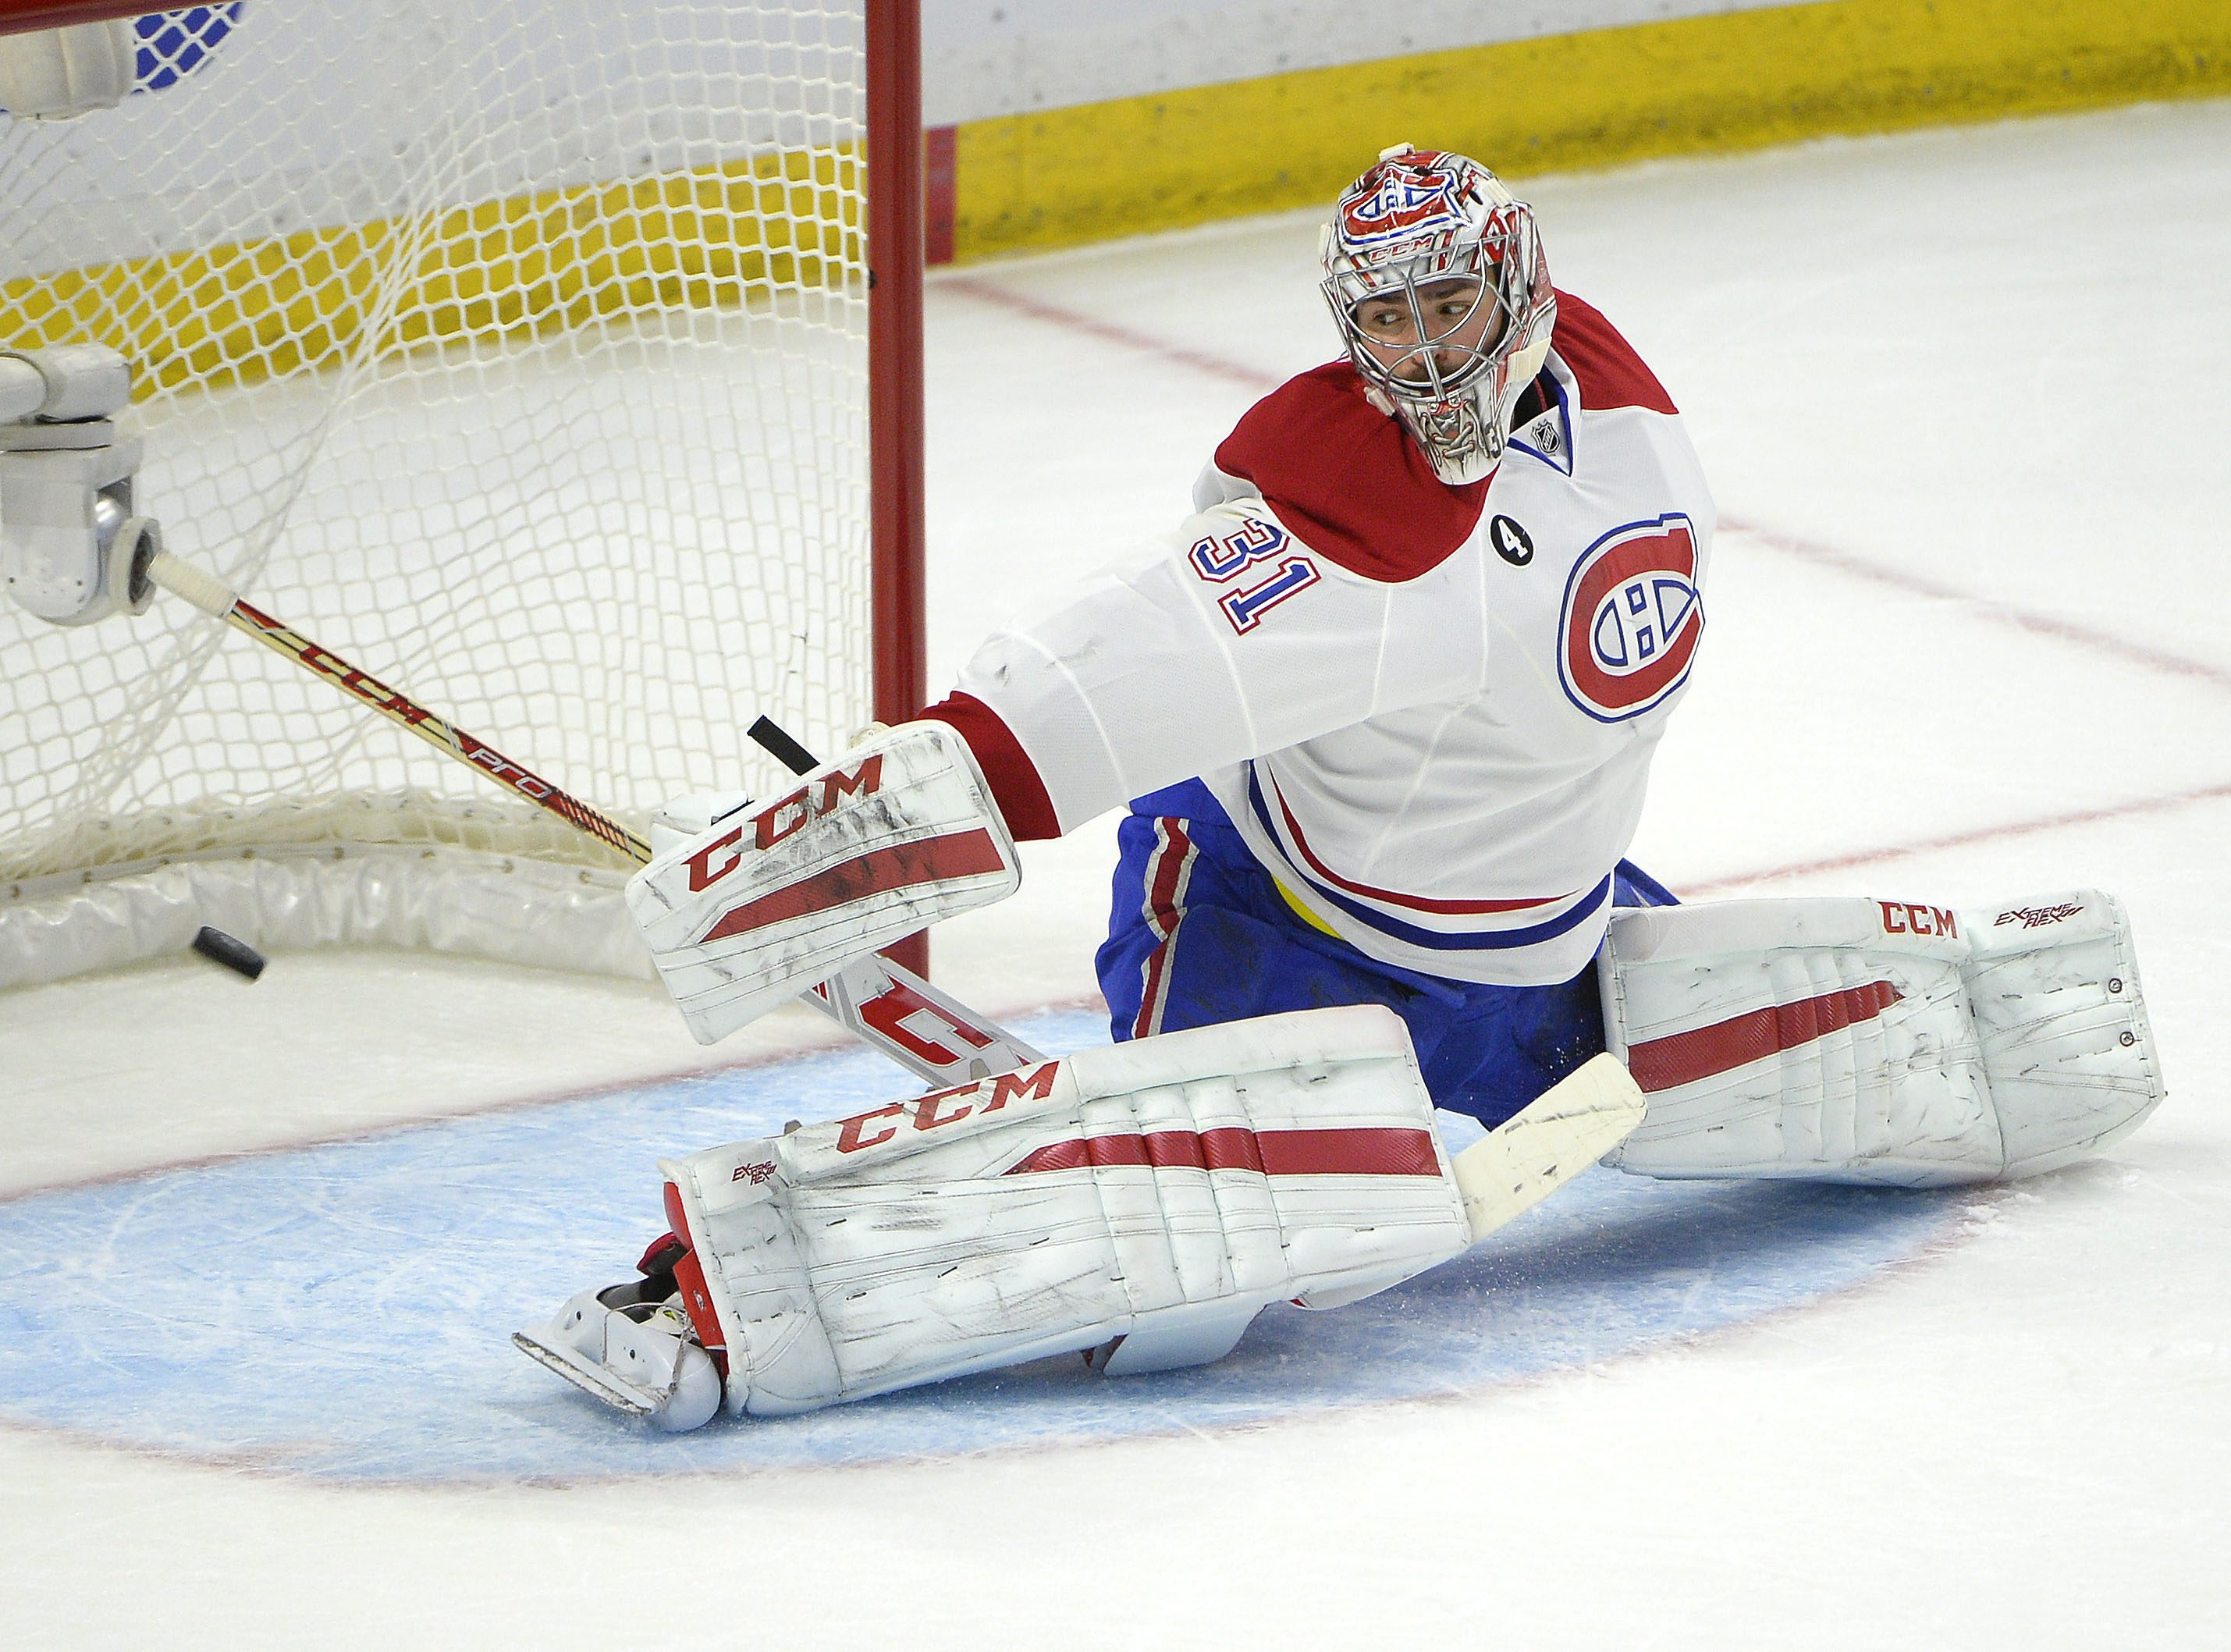 Montreal Canadiens' Carey Price (31) makes a save against Ottawa Senators' Kyle Turris during the first period of Game 6 of a first-round NHL hockey playoff series Sunday April 26, 2015, in Ottawa, Ontario. (Justin Tang/The Canadian Press via AP)   MANDAT